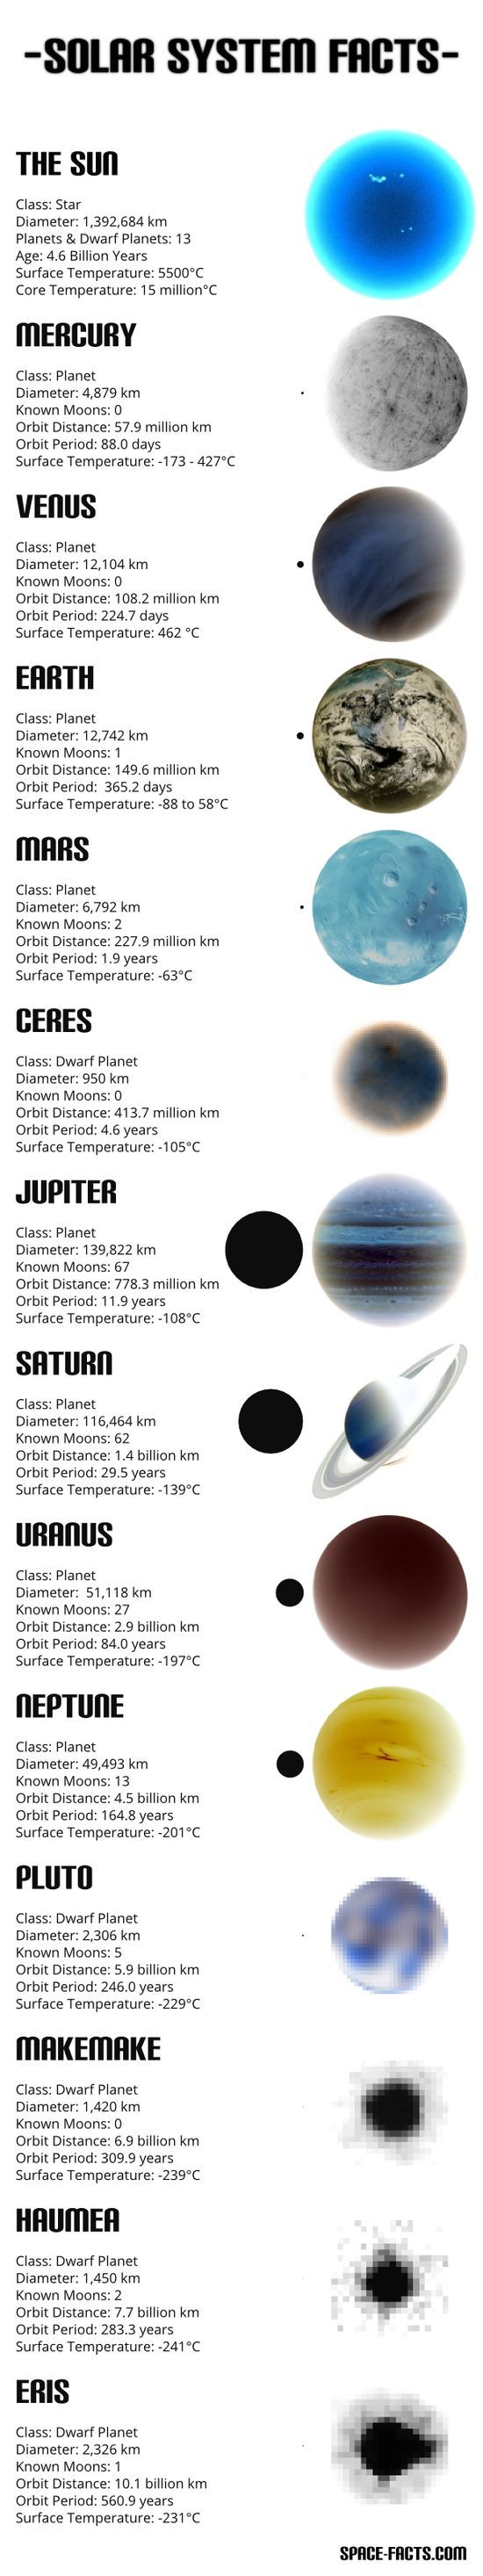 best ideas about solar system information solar solar system information infographic repinned by chesapeake college adult ed we offer classes on the eastern shore of md to help you earn your ged